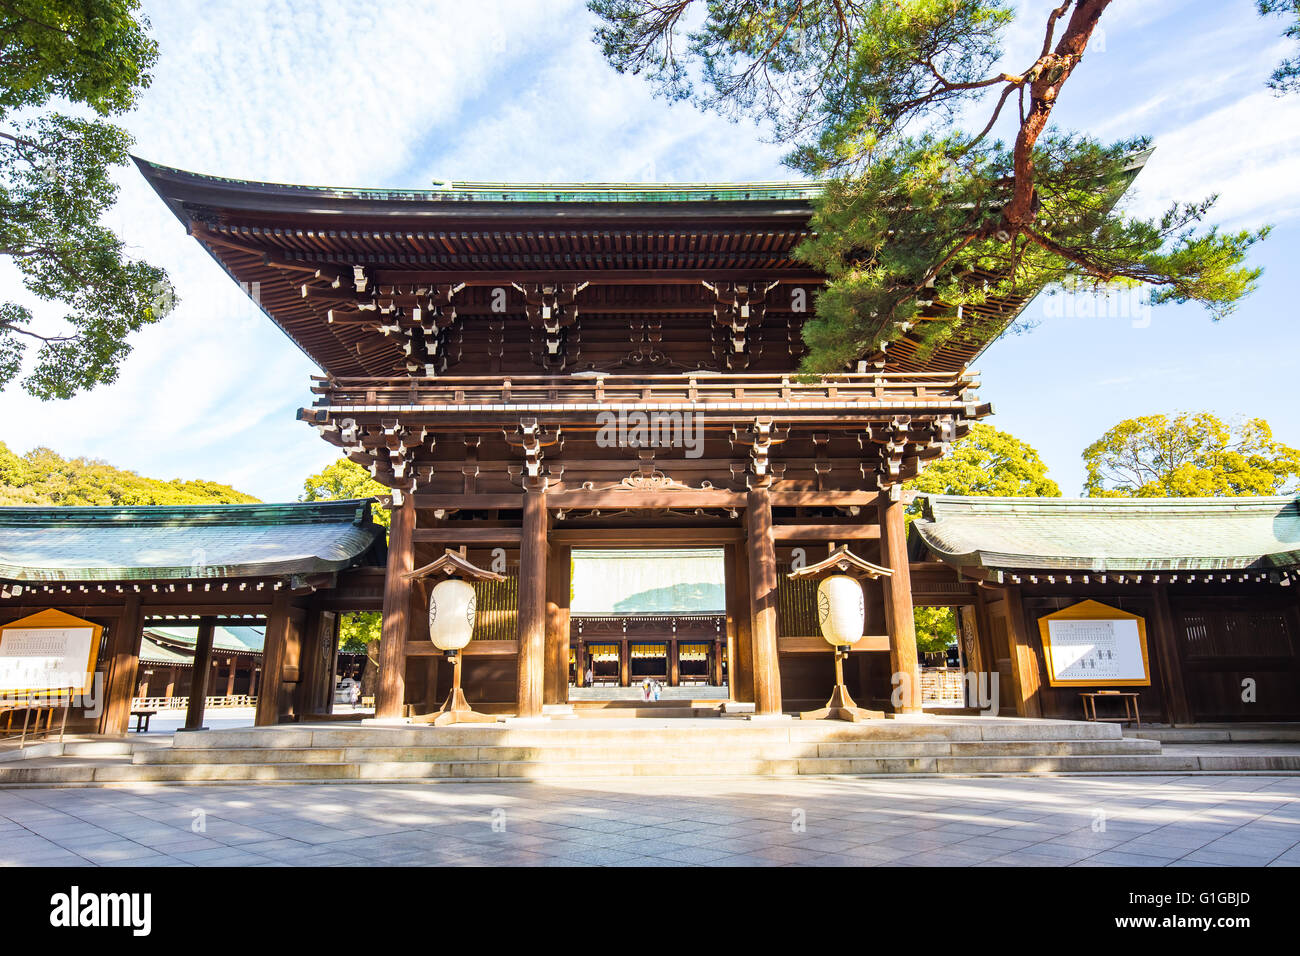 Tokyo, Japan - February 16, 2015: Meiji Shrine located in Shibuya, Tokyo, is the Shinto shrine that is dedicated - Stock Image